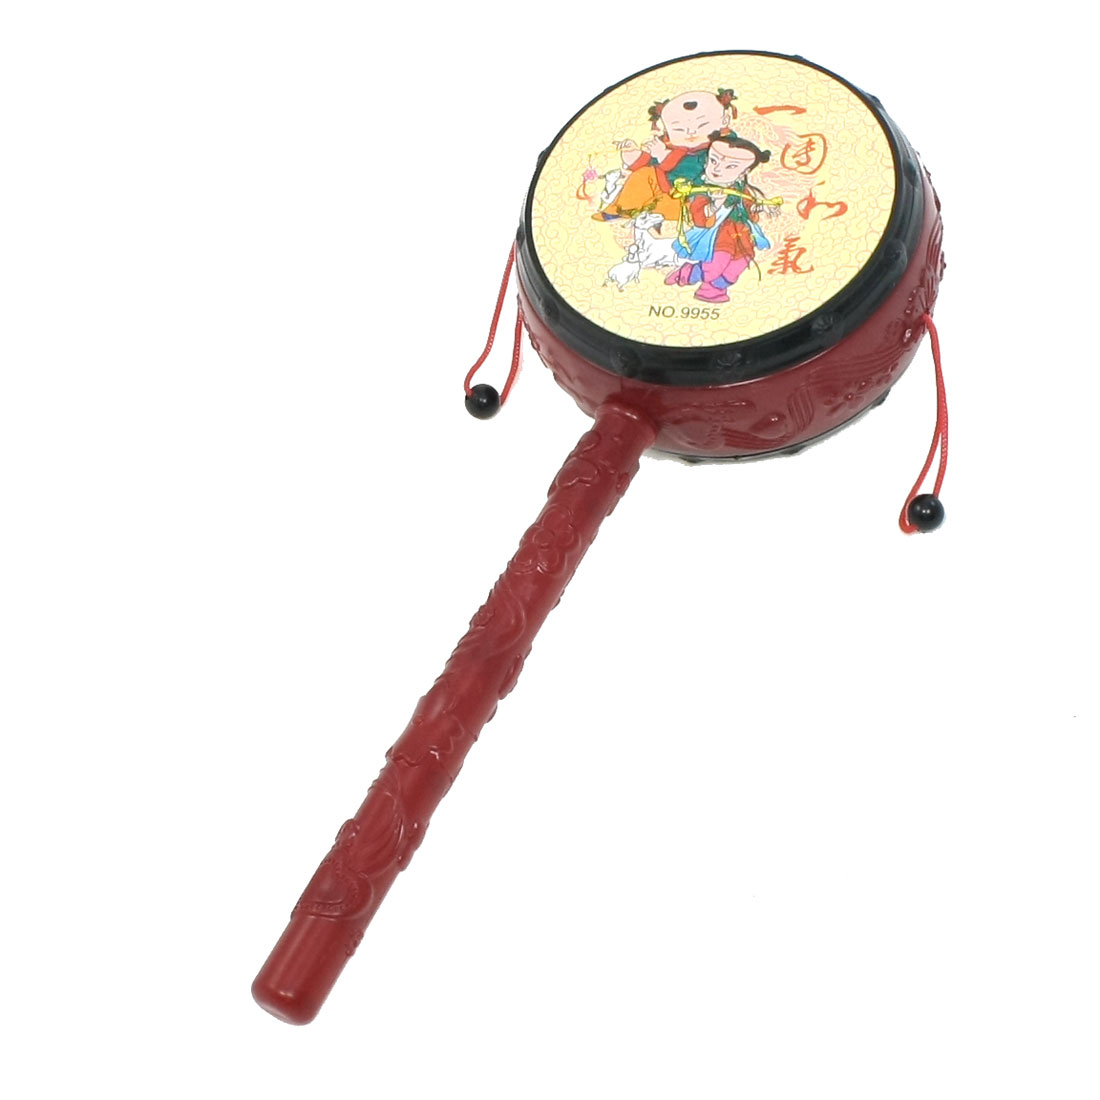 Chinese Traditional Hand Rattle Drum Toy for Toddlers Babies